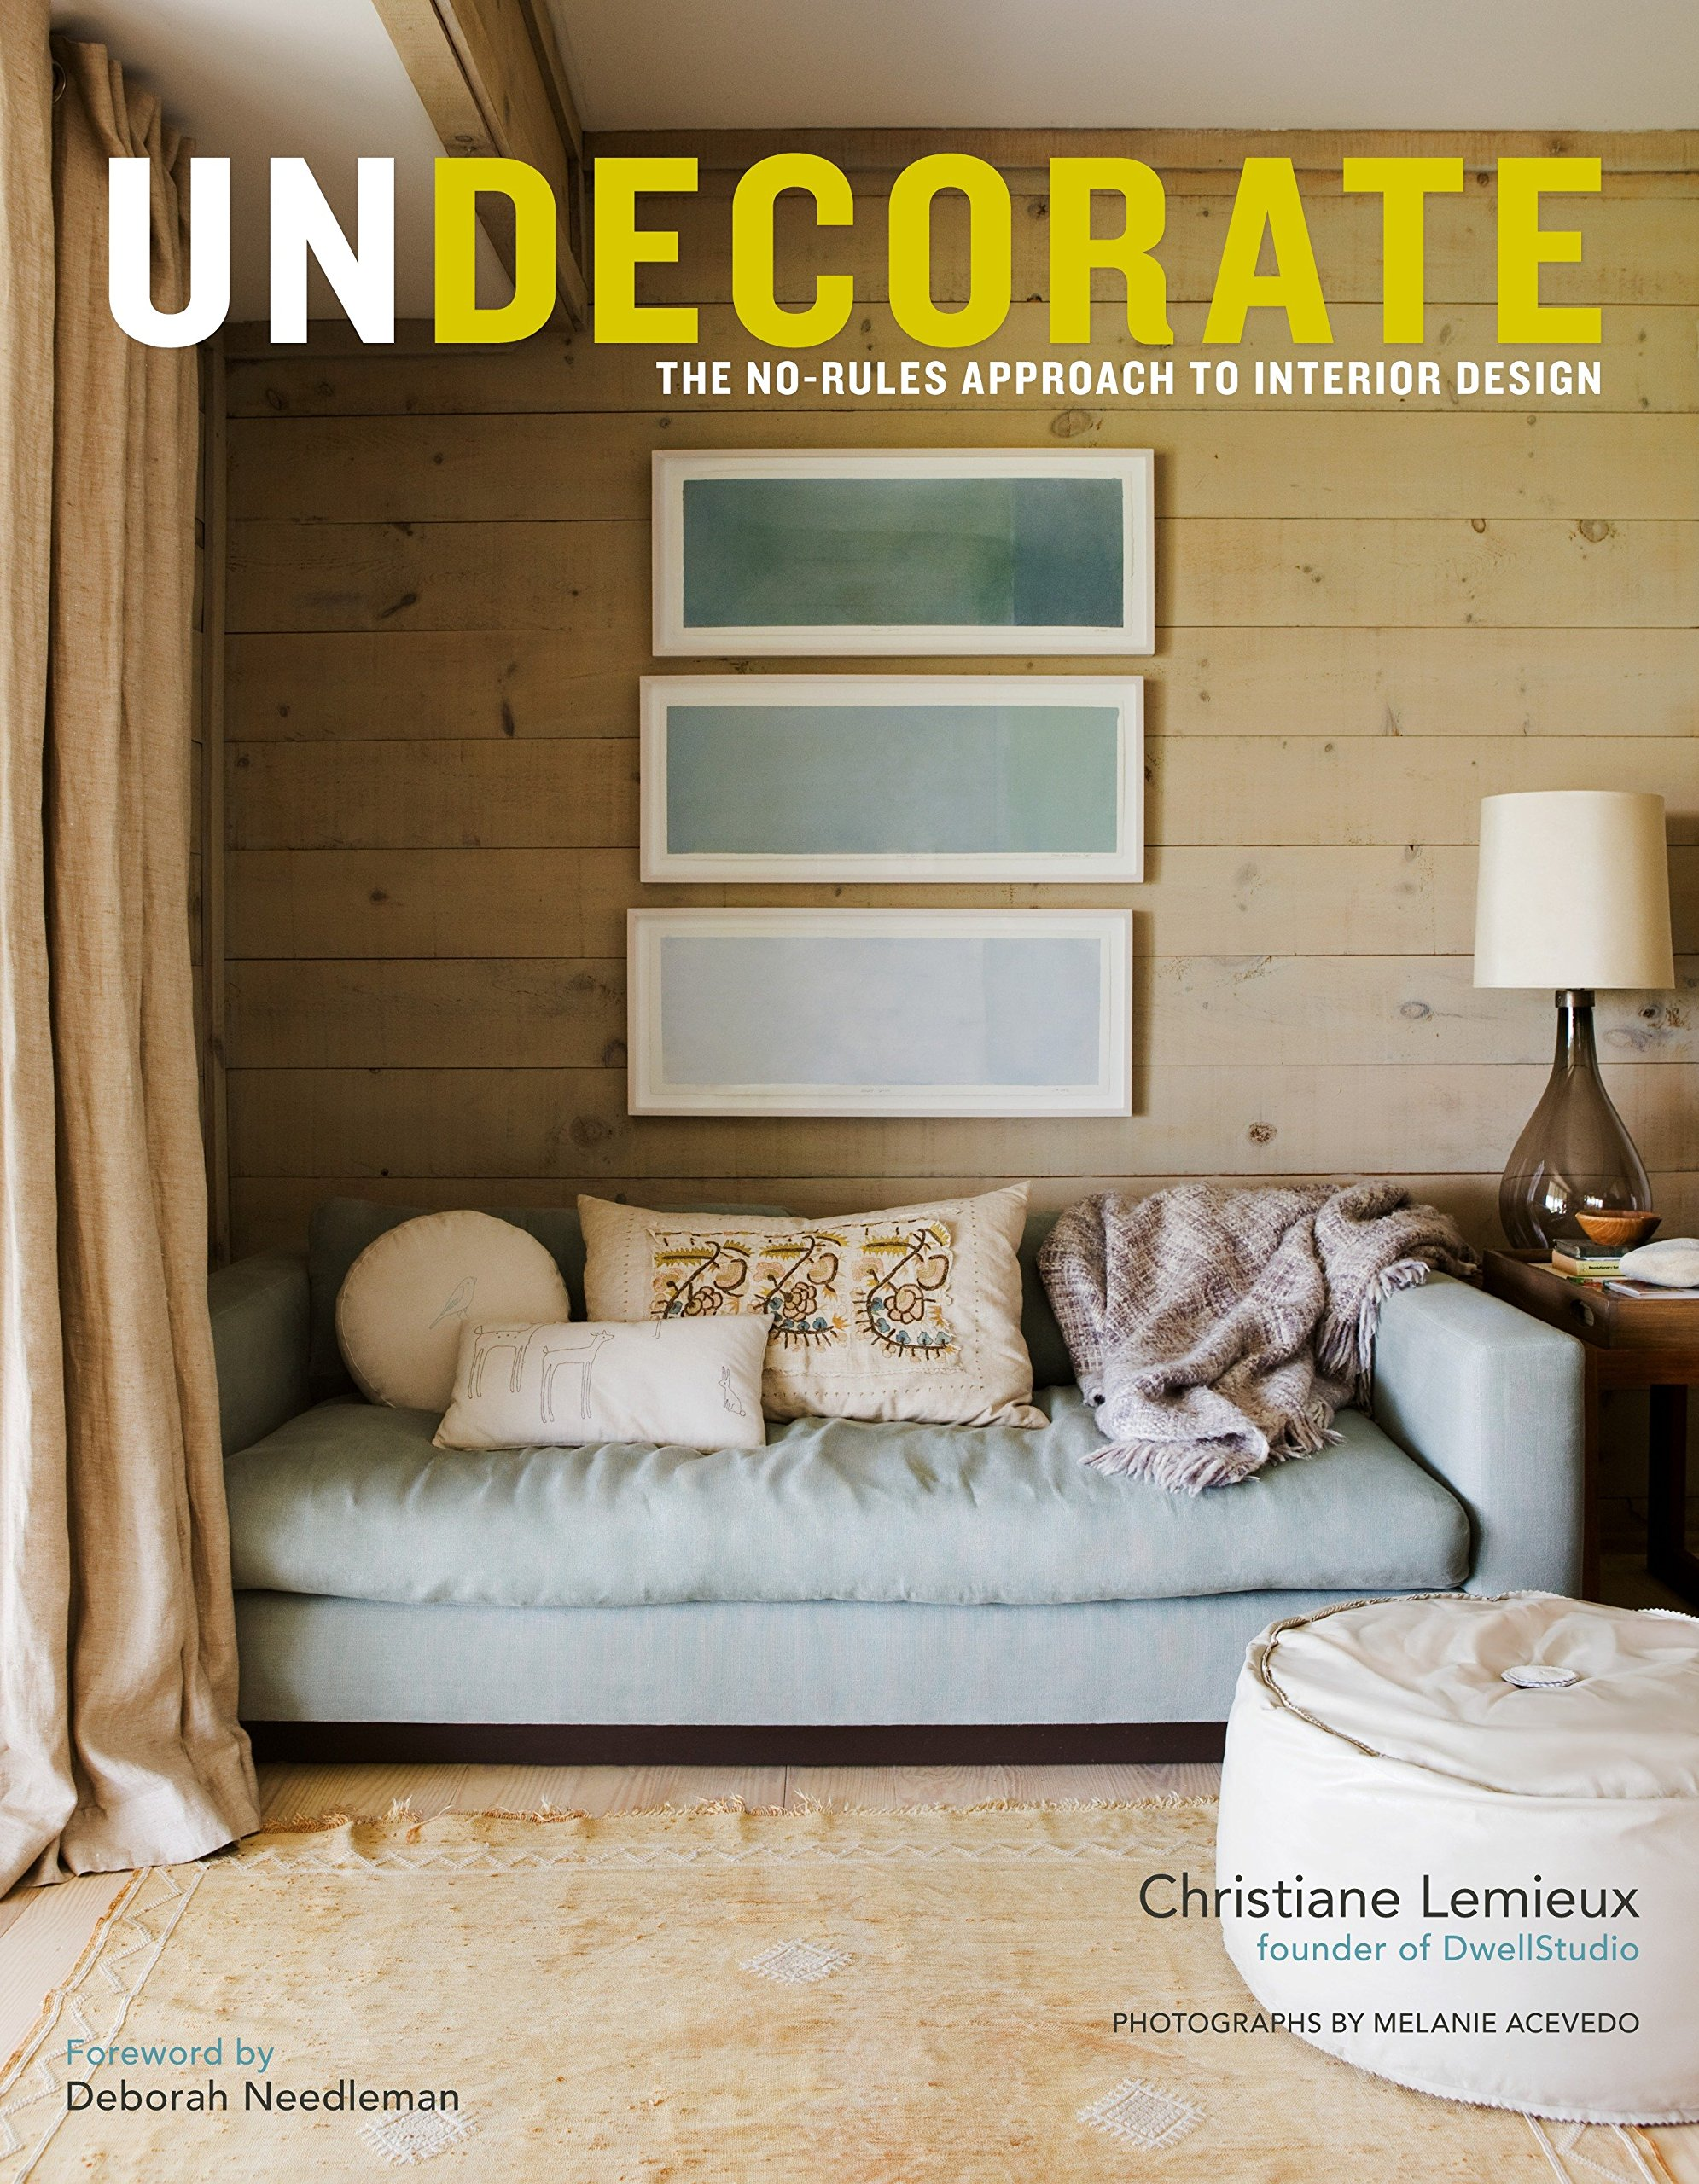 Amazon.com: Undecorate: The No Rules Approach To Interior Design  (9780307463159): Christiane Lemieux, Rumaan Alam: Books